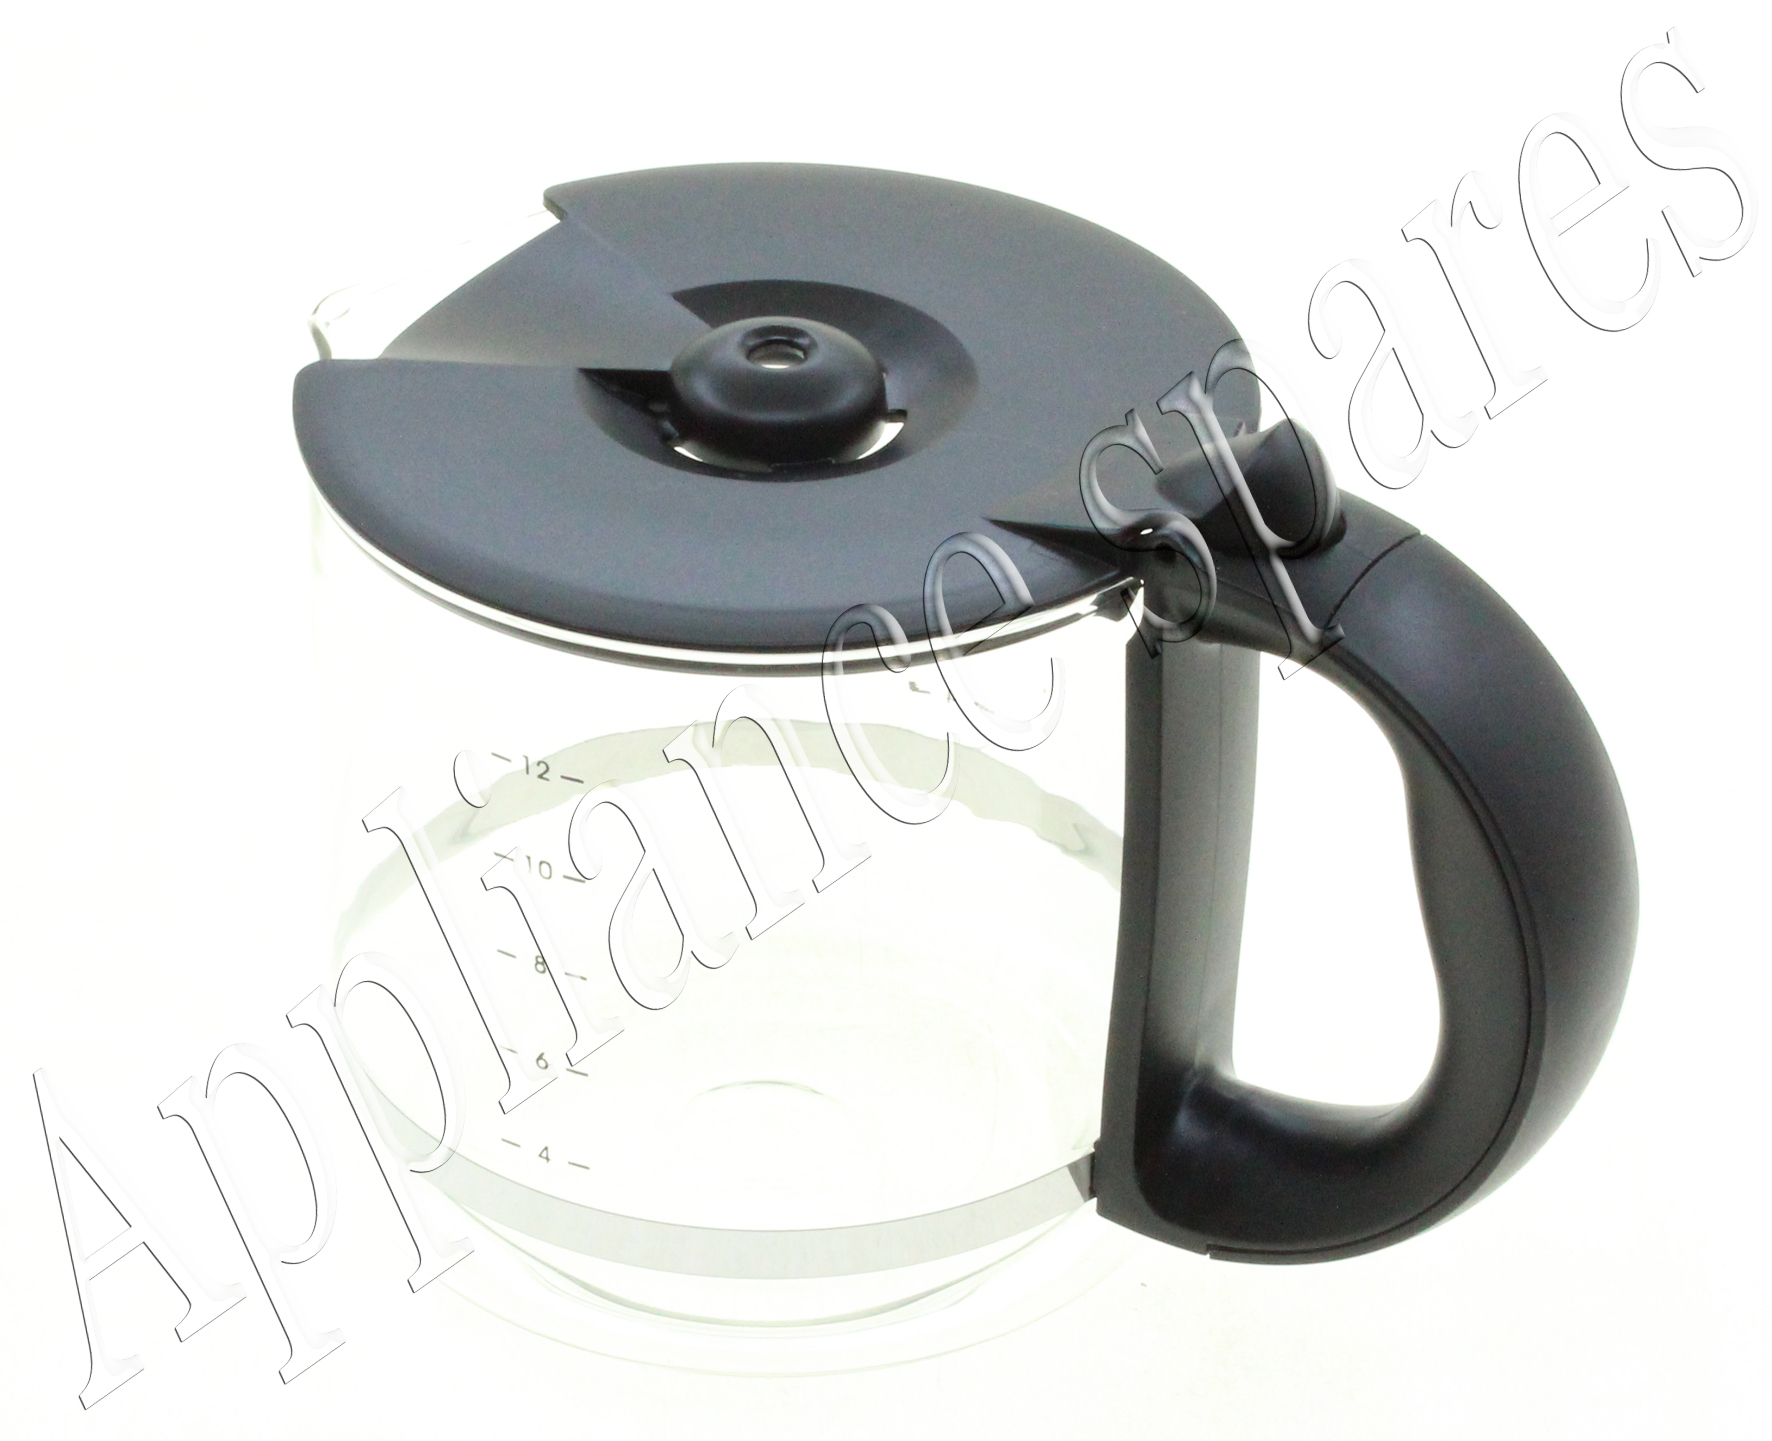 Coffee Maker Jug Spares : RUSSELL HOBBS COFFEE MAKER GLASS JUG Lategan And Van Biljoens Appliance Spares, Parts and ...